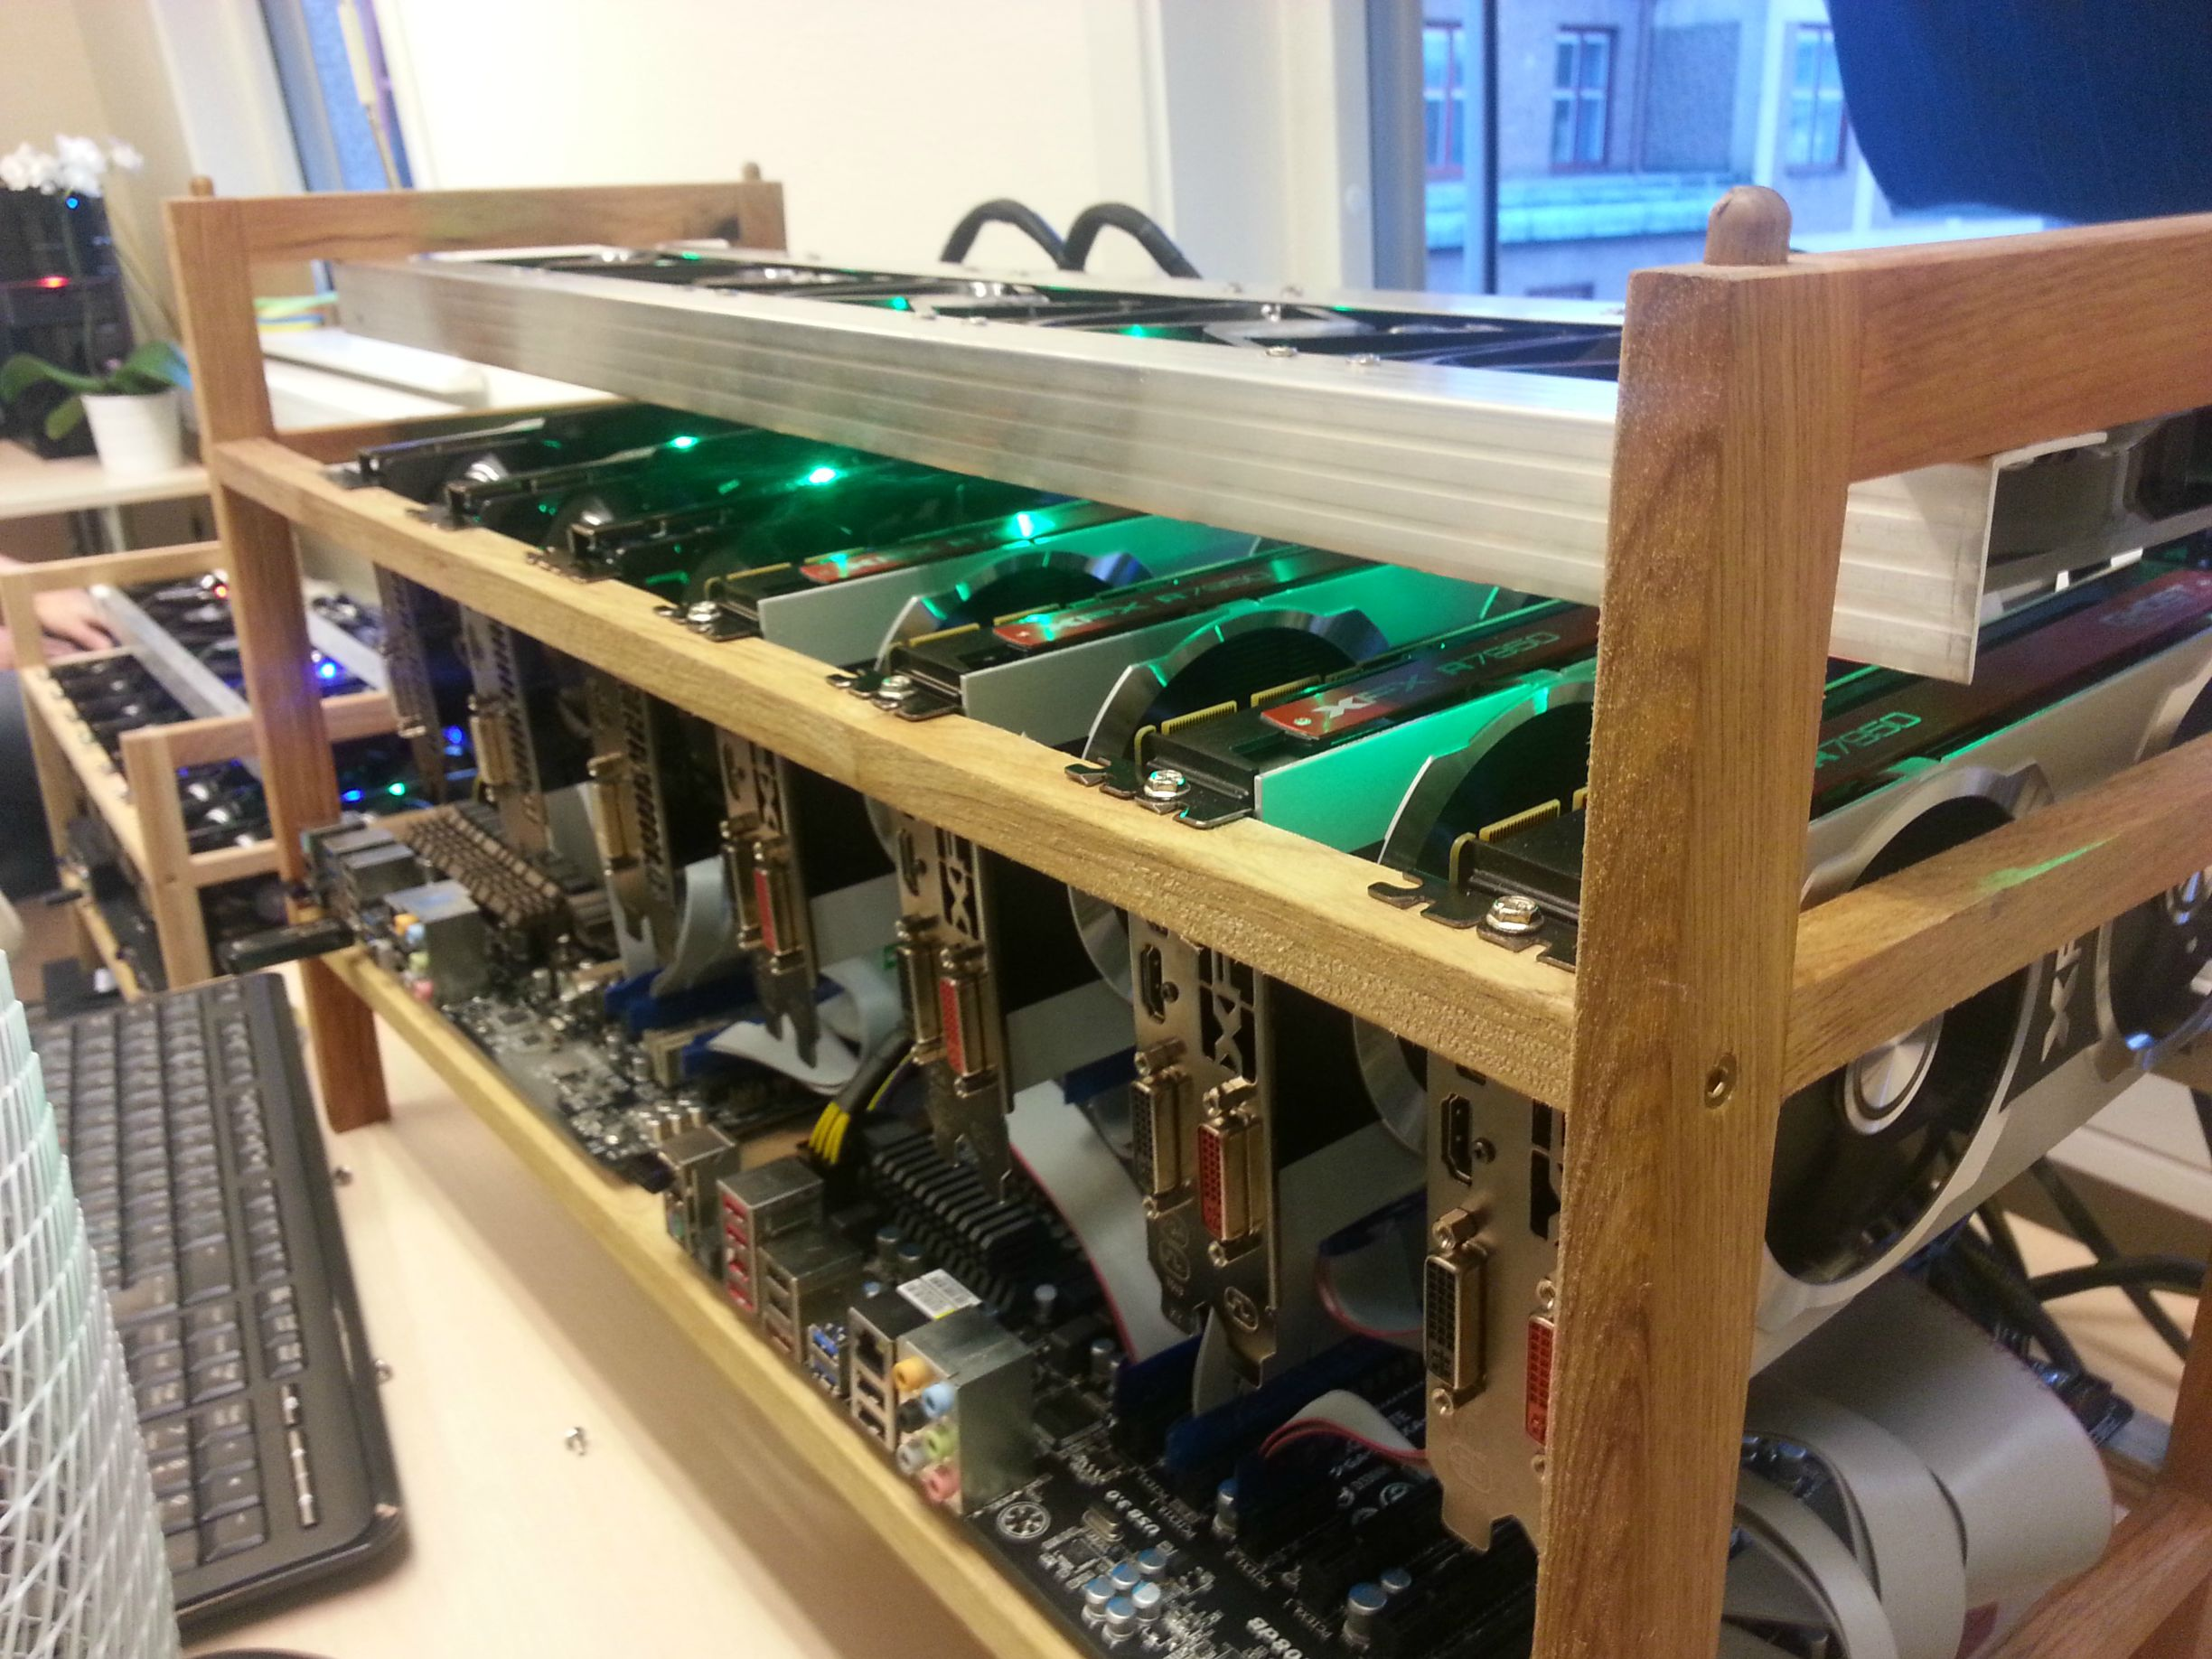 20 Insane Bitcoin Mining Rigs